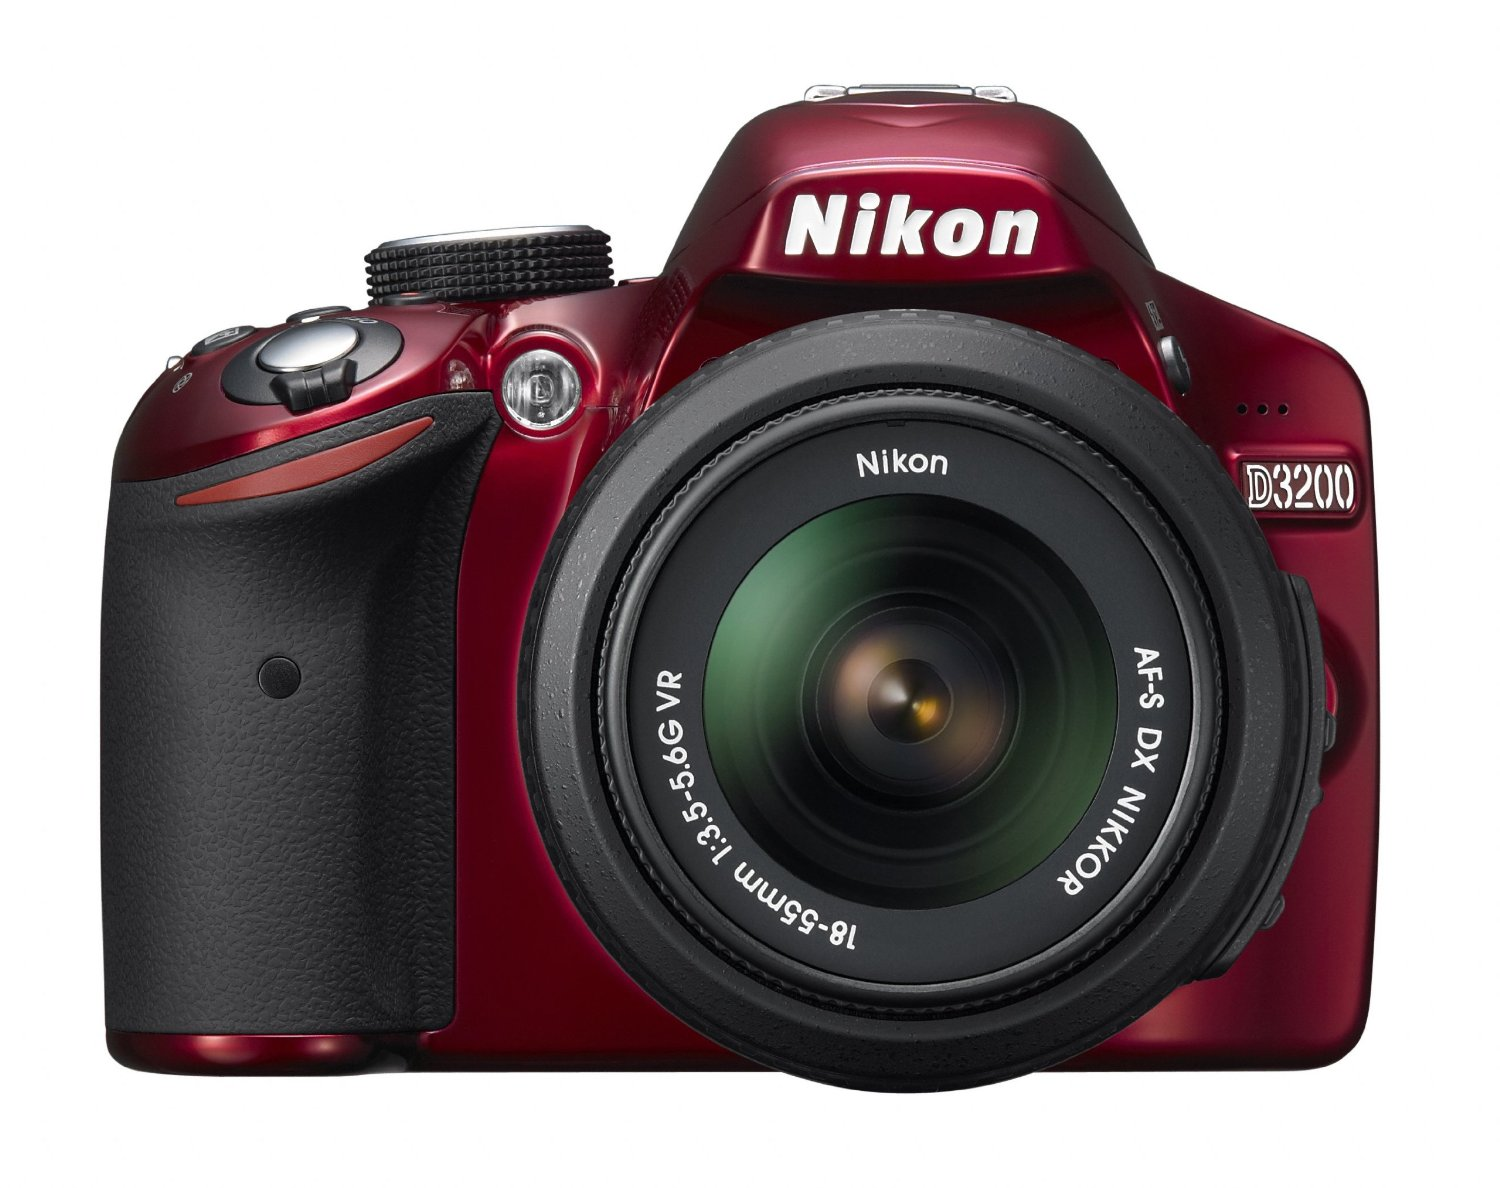 Amazon.com : Nikon D3200 24.2 MP CMOS Digital SLR with 18-55mm f/3.5-5.6 AF-S DX VR NIKKOR Zoom Lens (Red) : Slr Digital Cameras